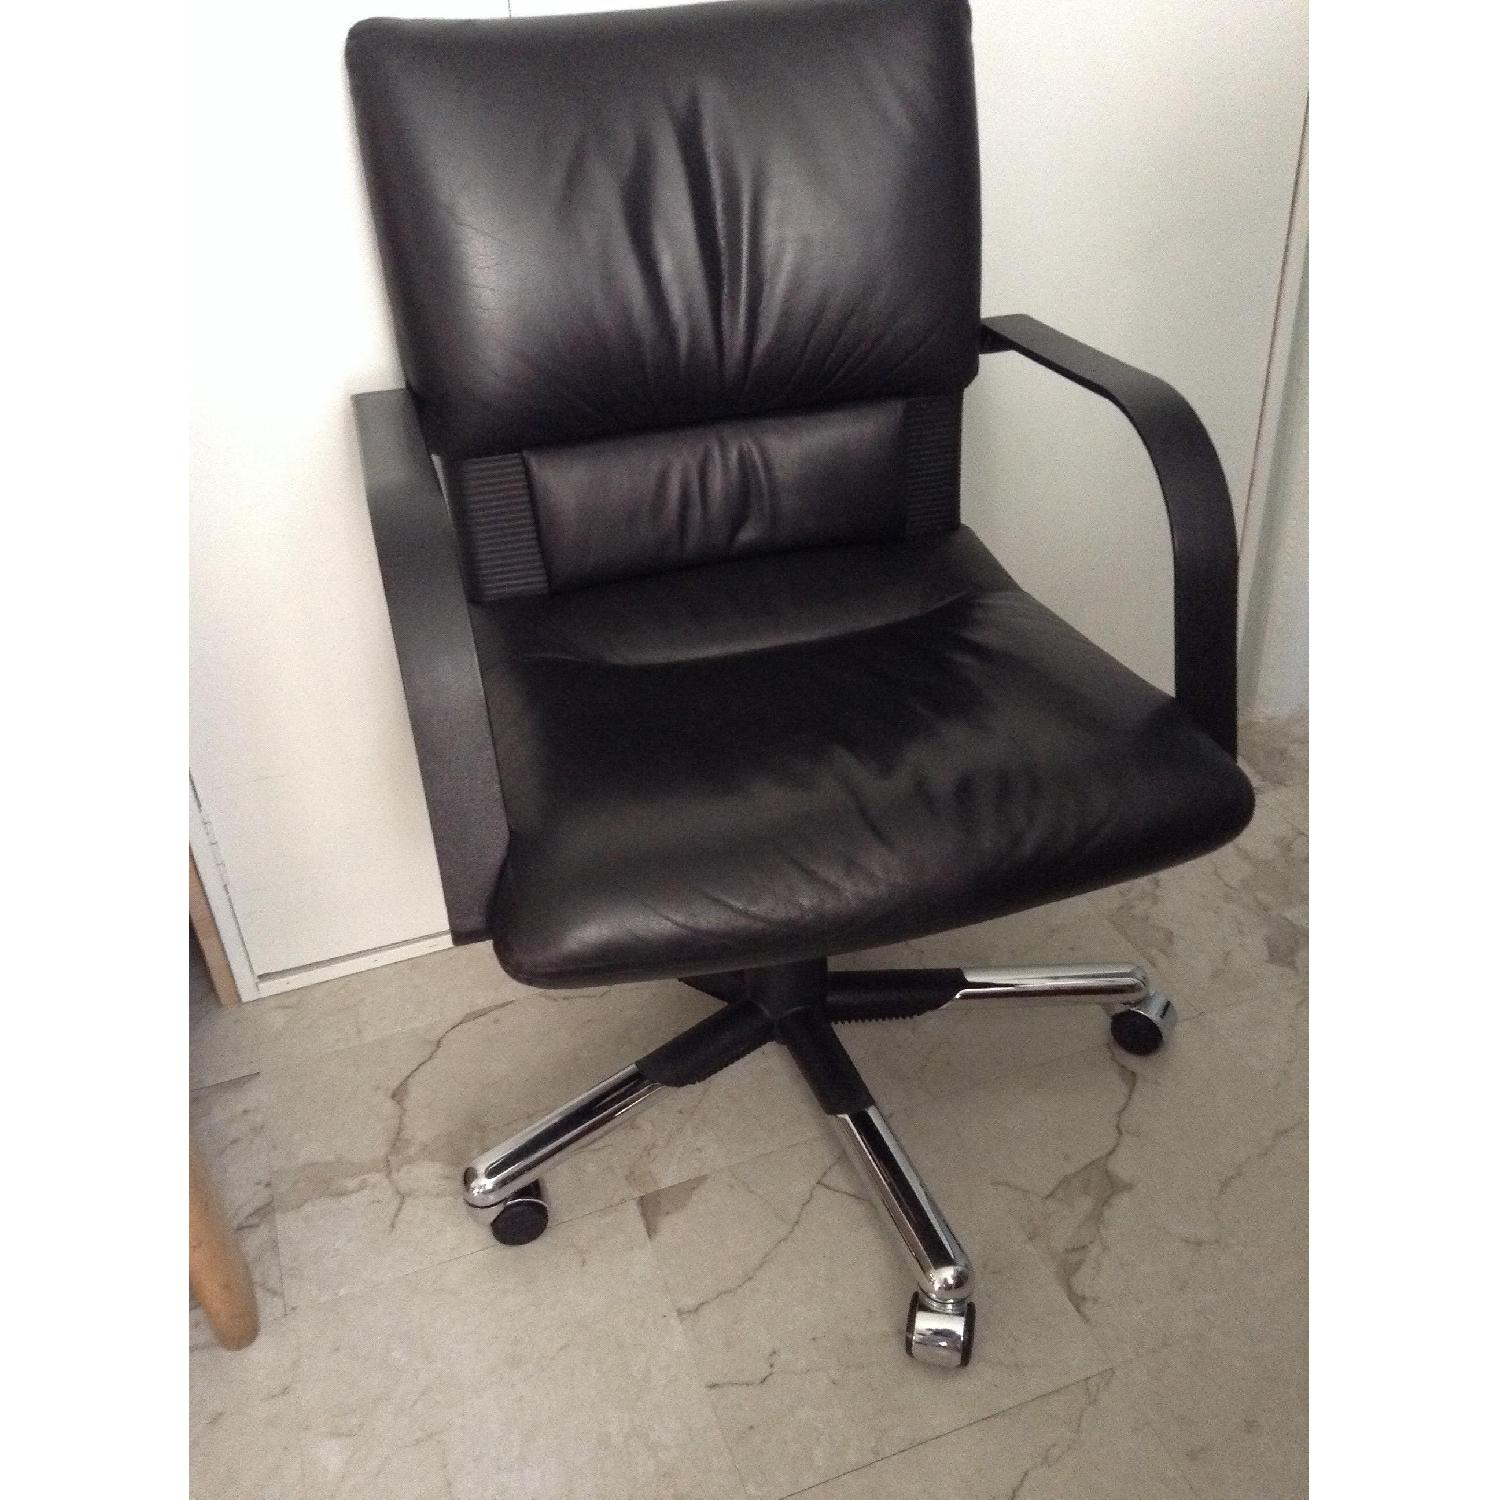 Vitra Black Leather Swivel Chair By Mario Bellini - image-12